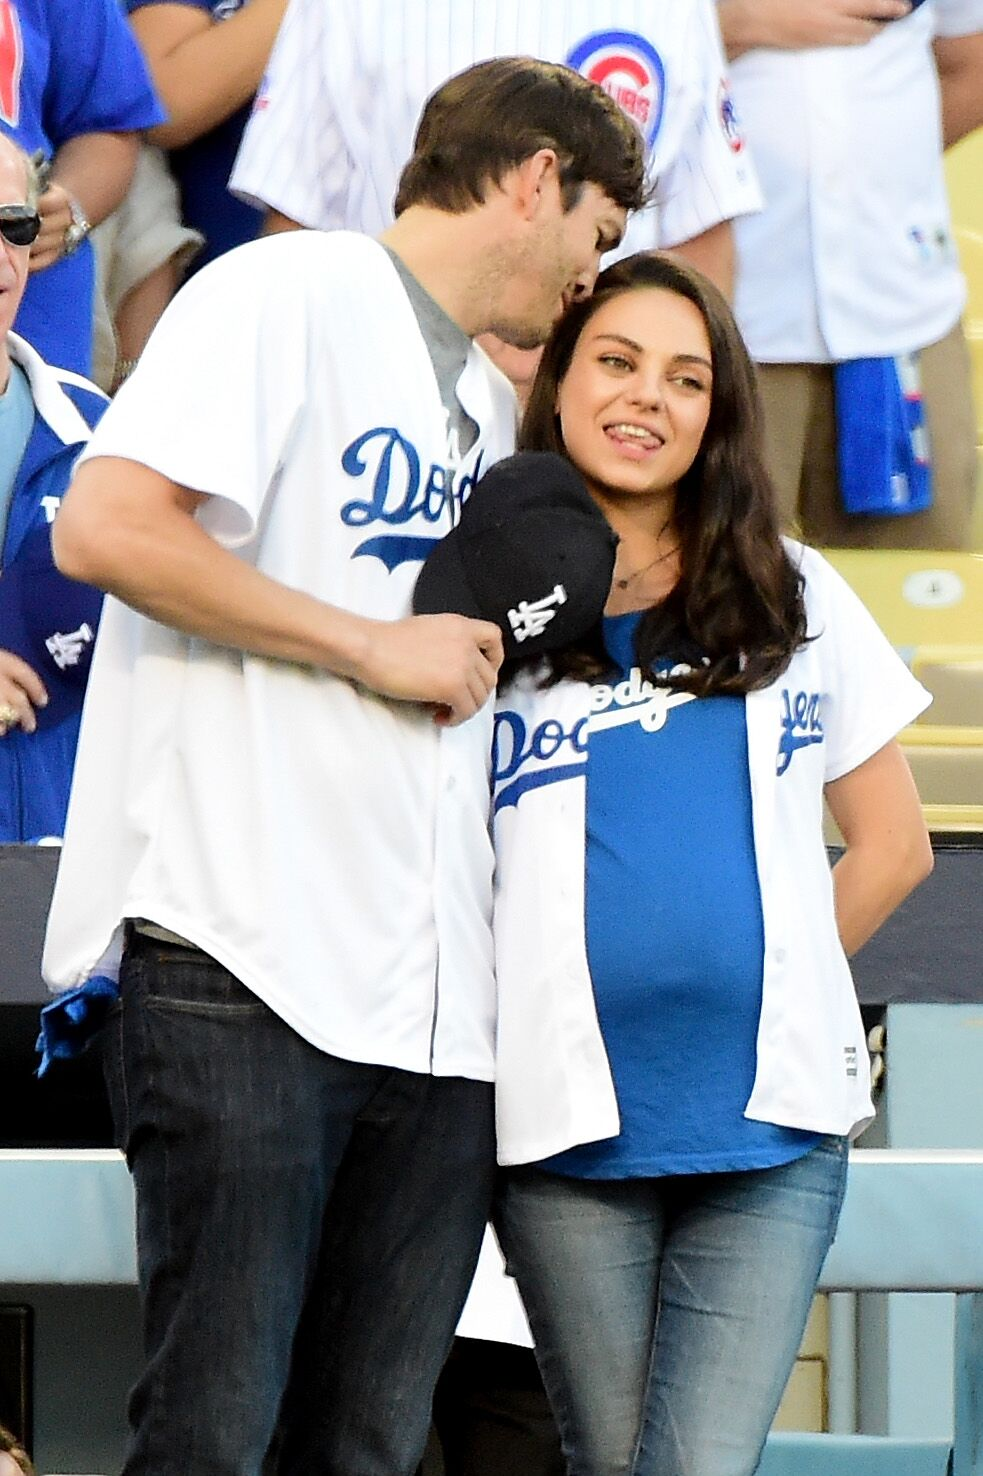 Mila Kunis and Ashton Kutcher at a Dodgers game. | Source: Getty Images